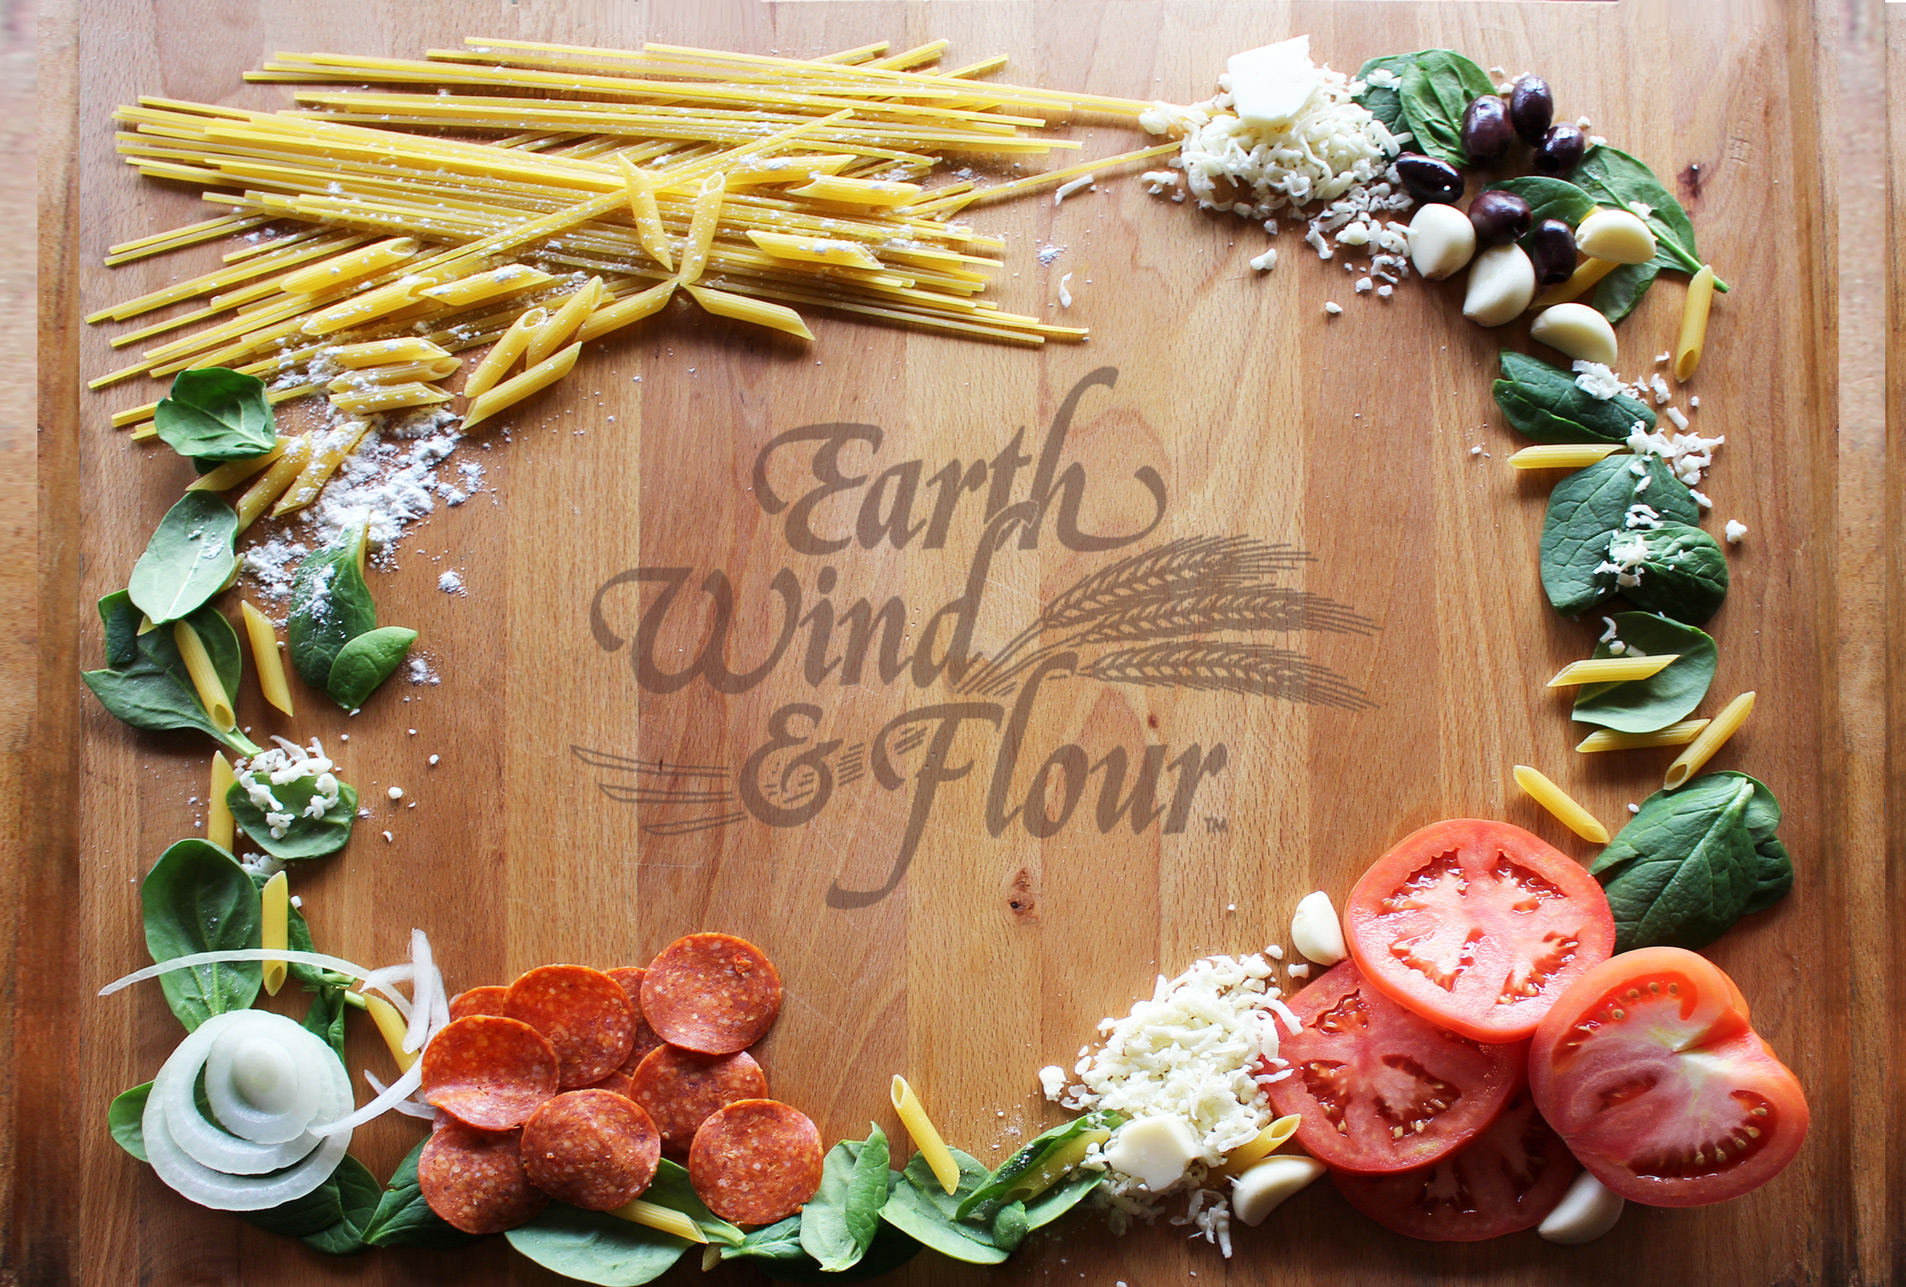 Earth Wind & Flour